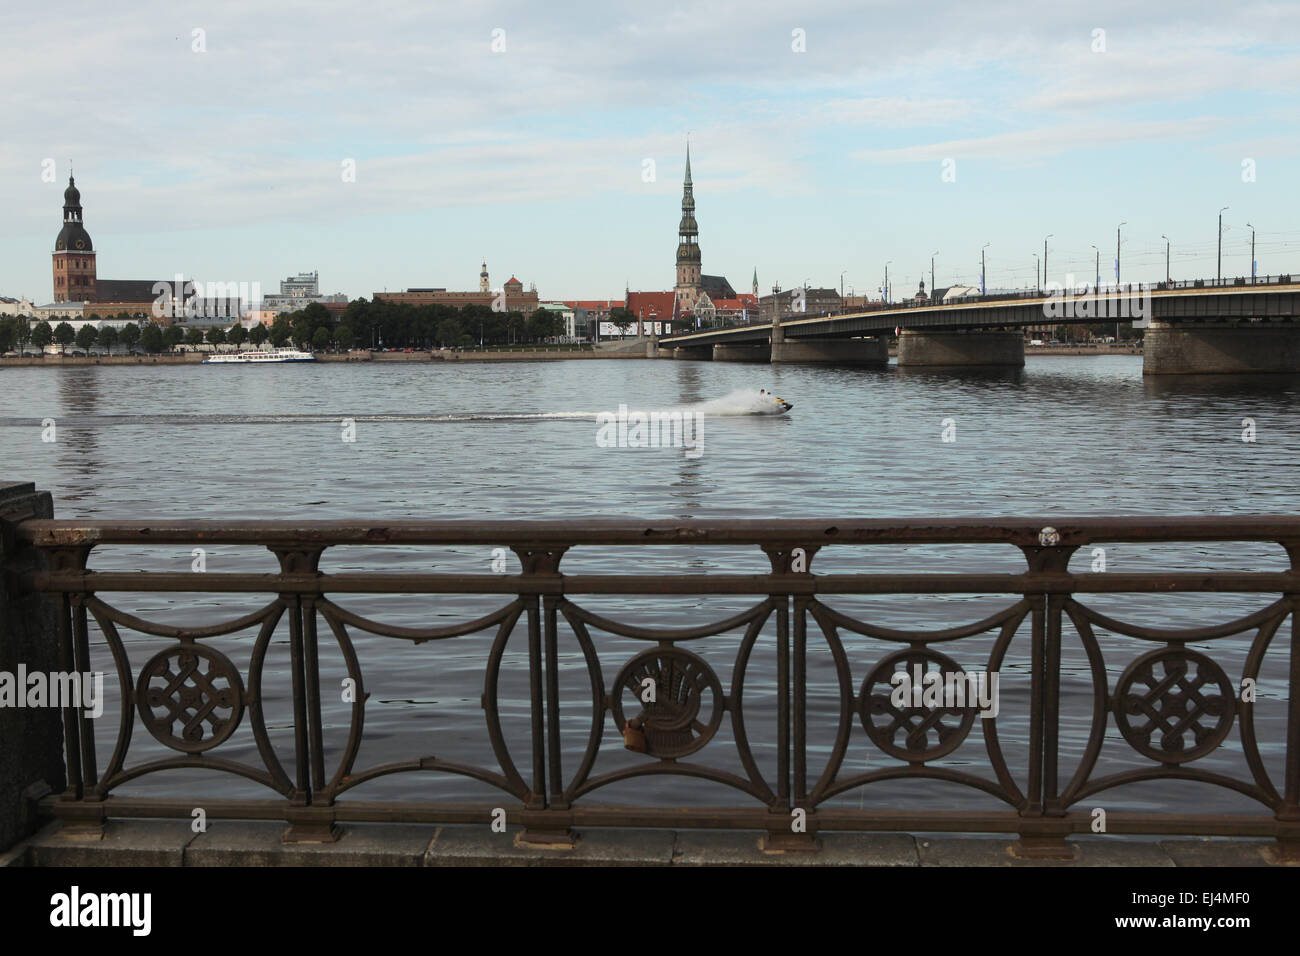 Riga Cathedral and St Peter's Church at the embankment of the River Daugava in Riga, Latvia. - Stock Image